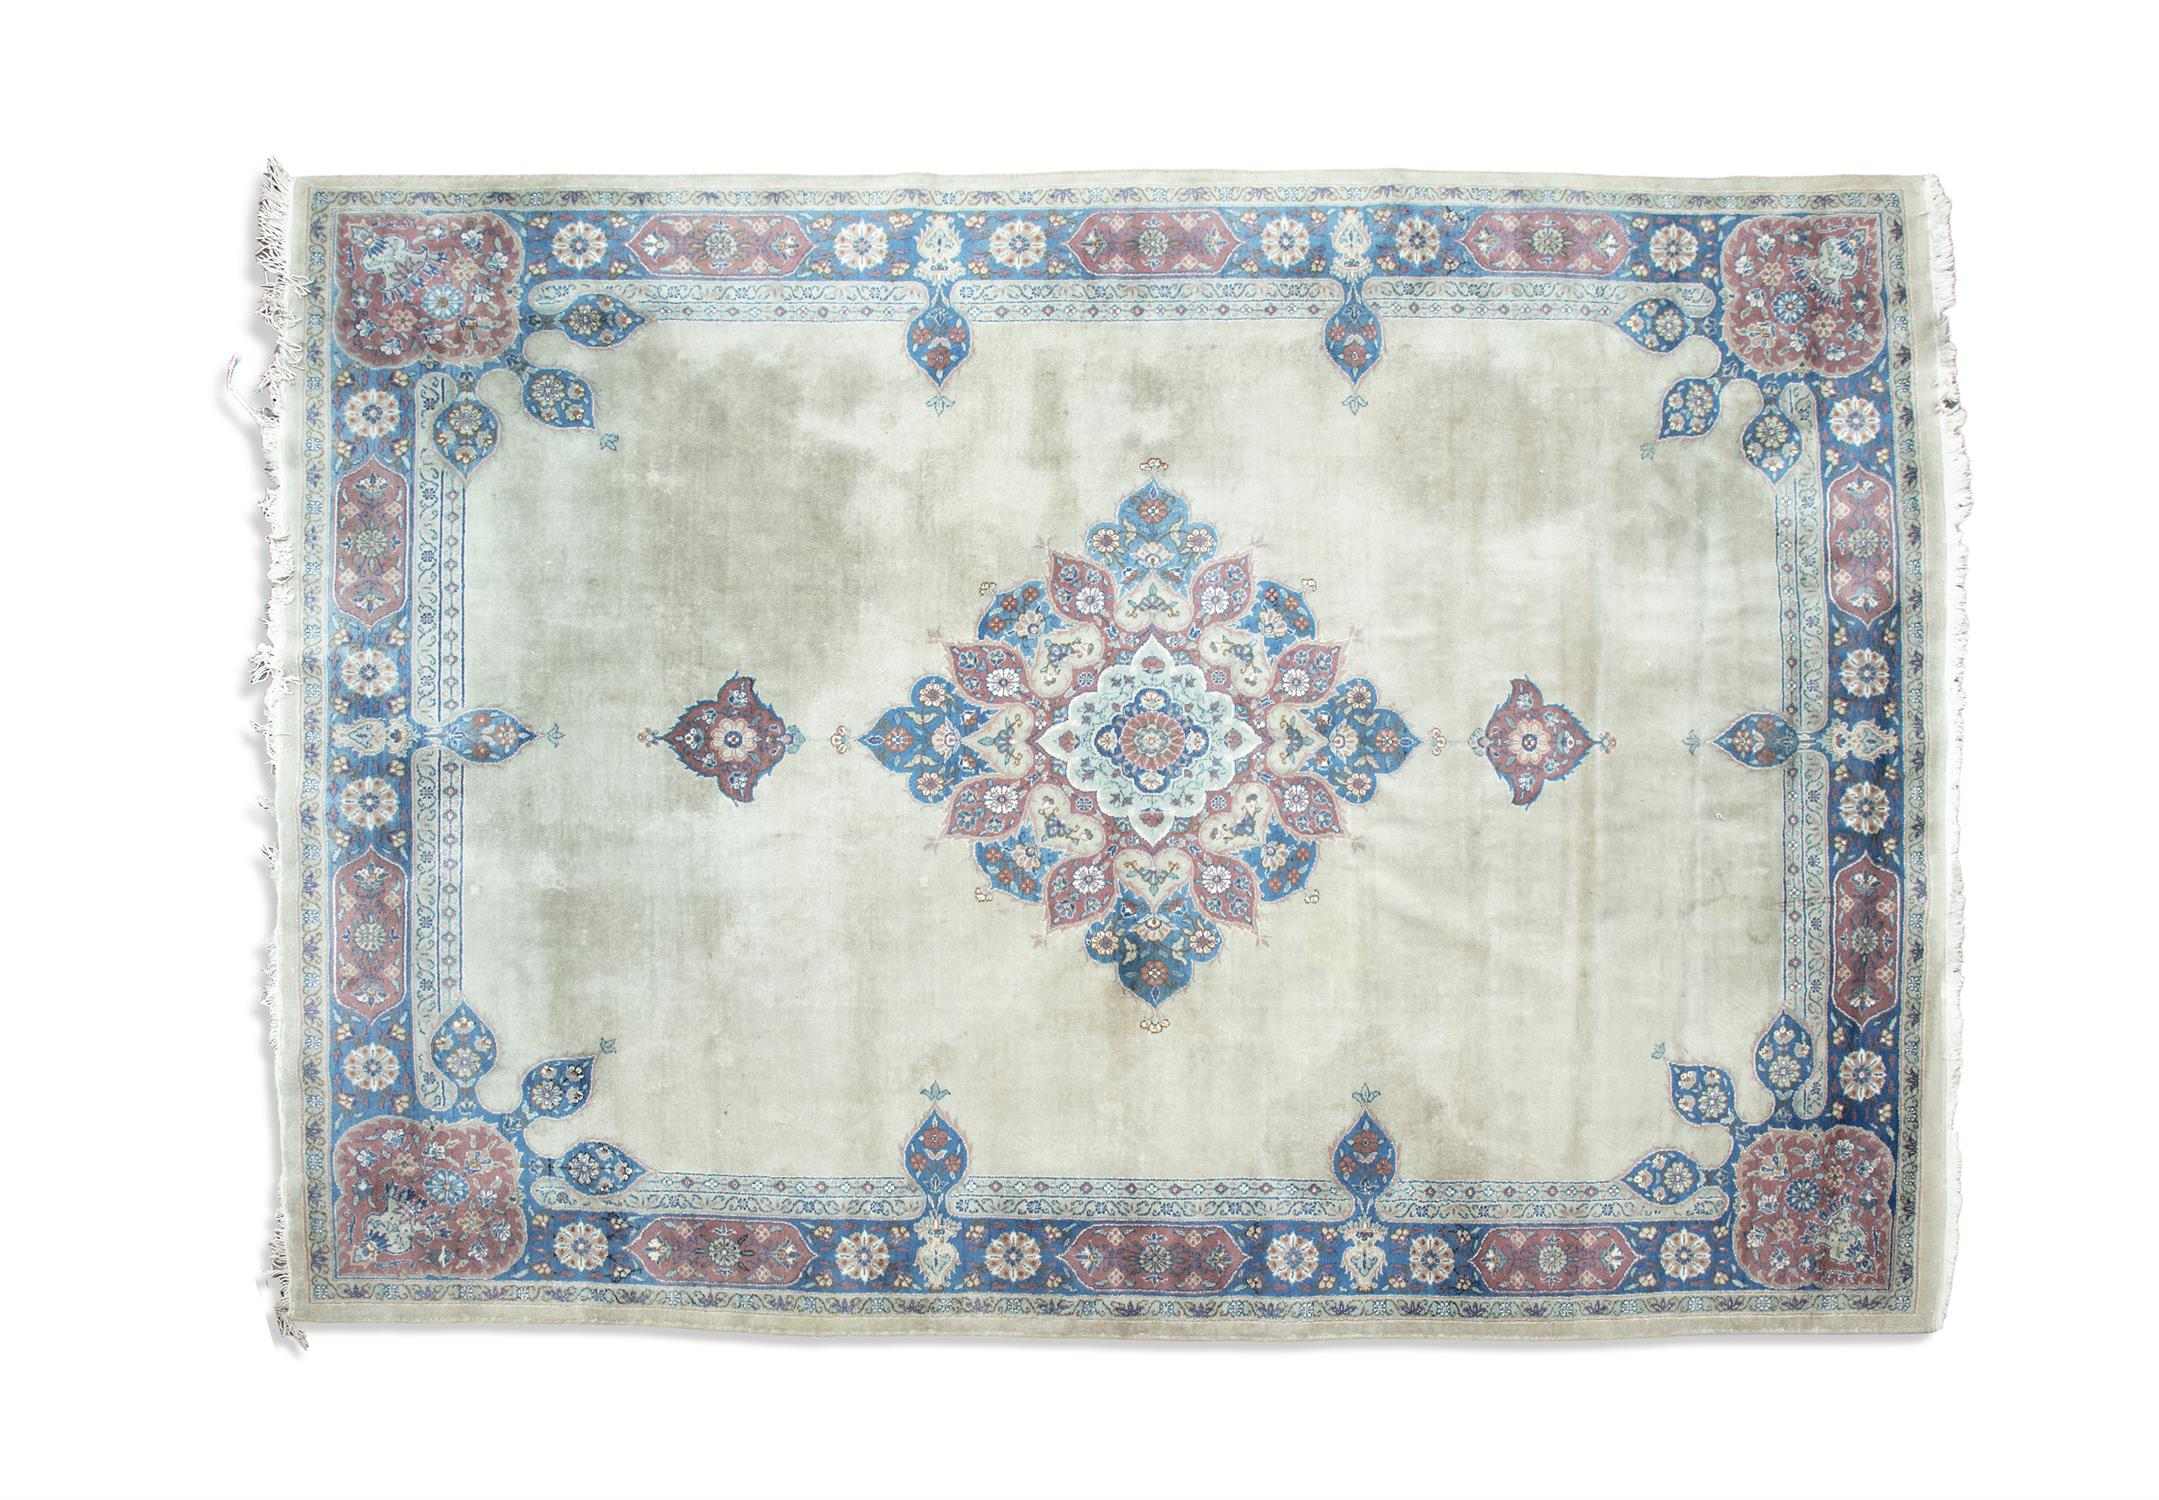 AN INDIAN WOOL CARPET, 20th century, the soft cream ground centre field, woven with large floral